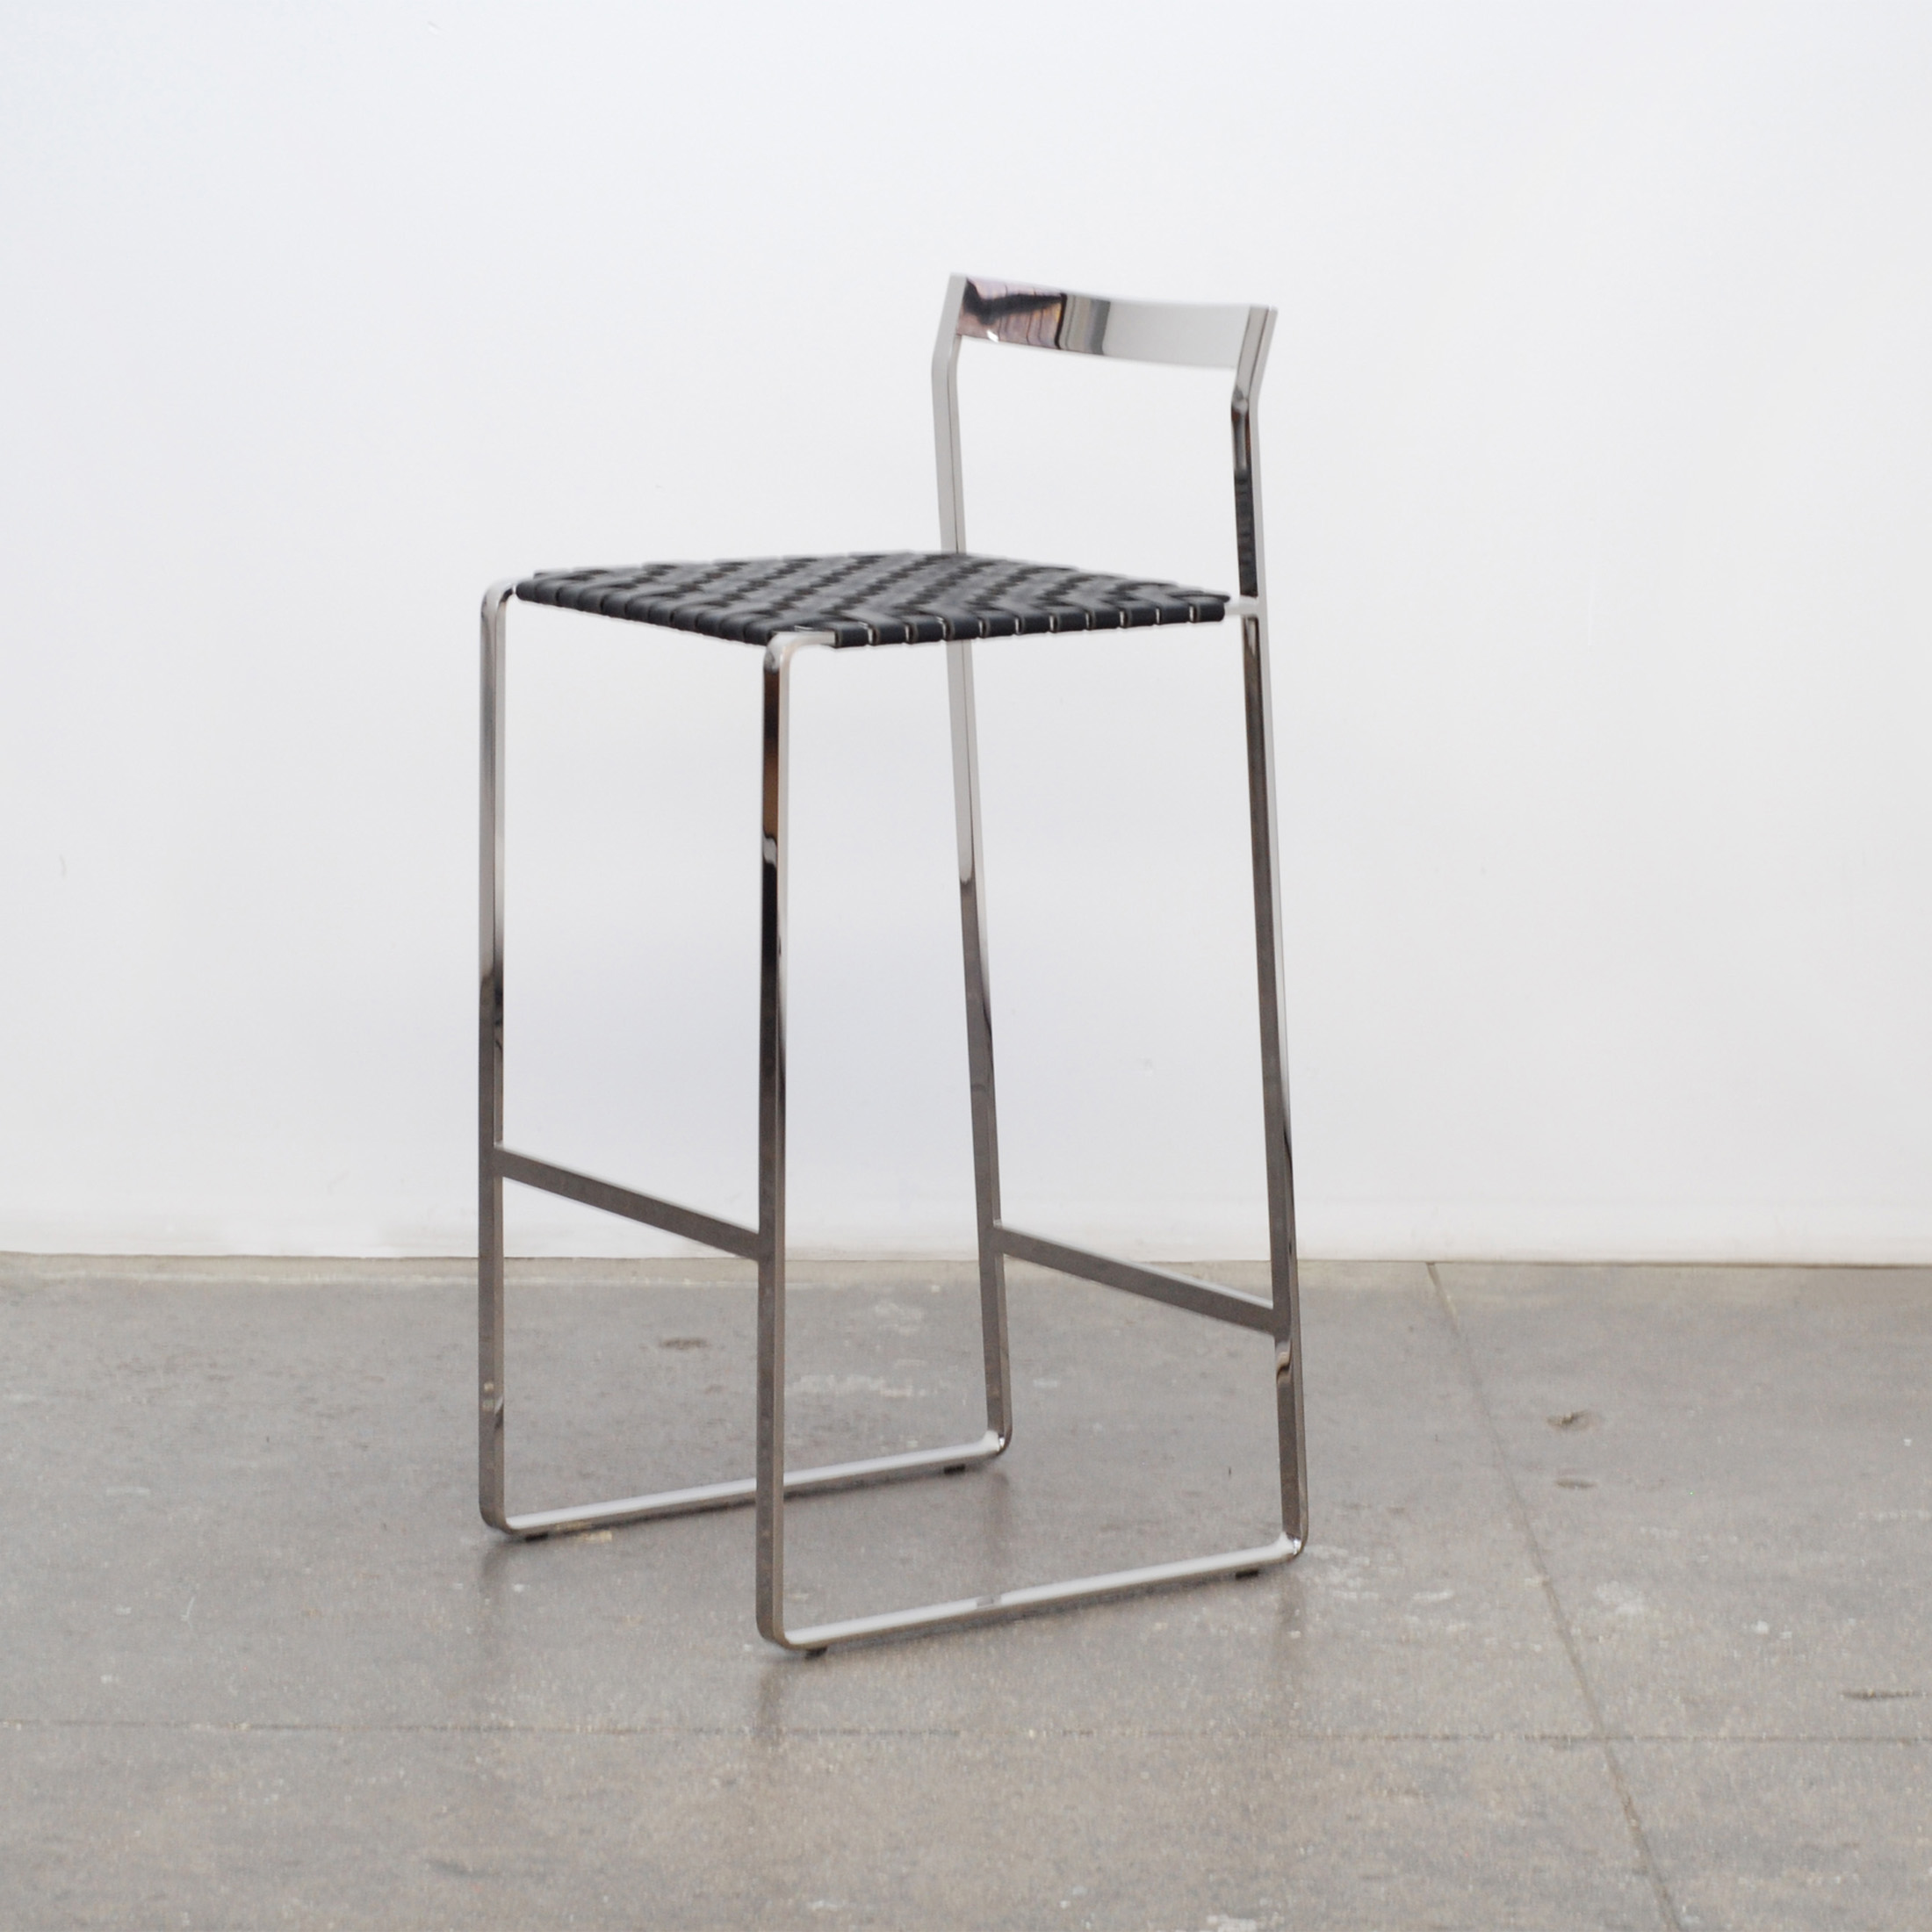 aluminum bar stools without backs photo - 4